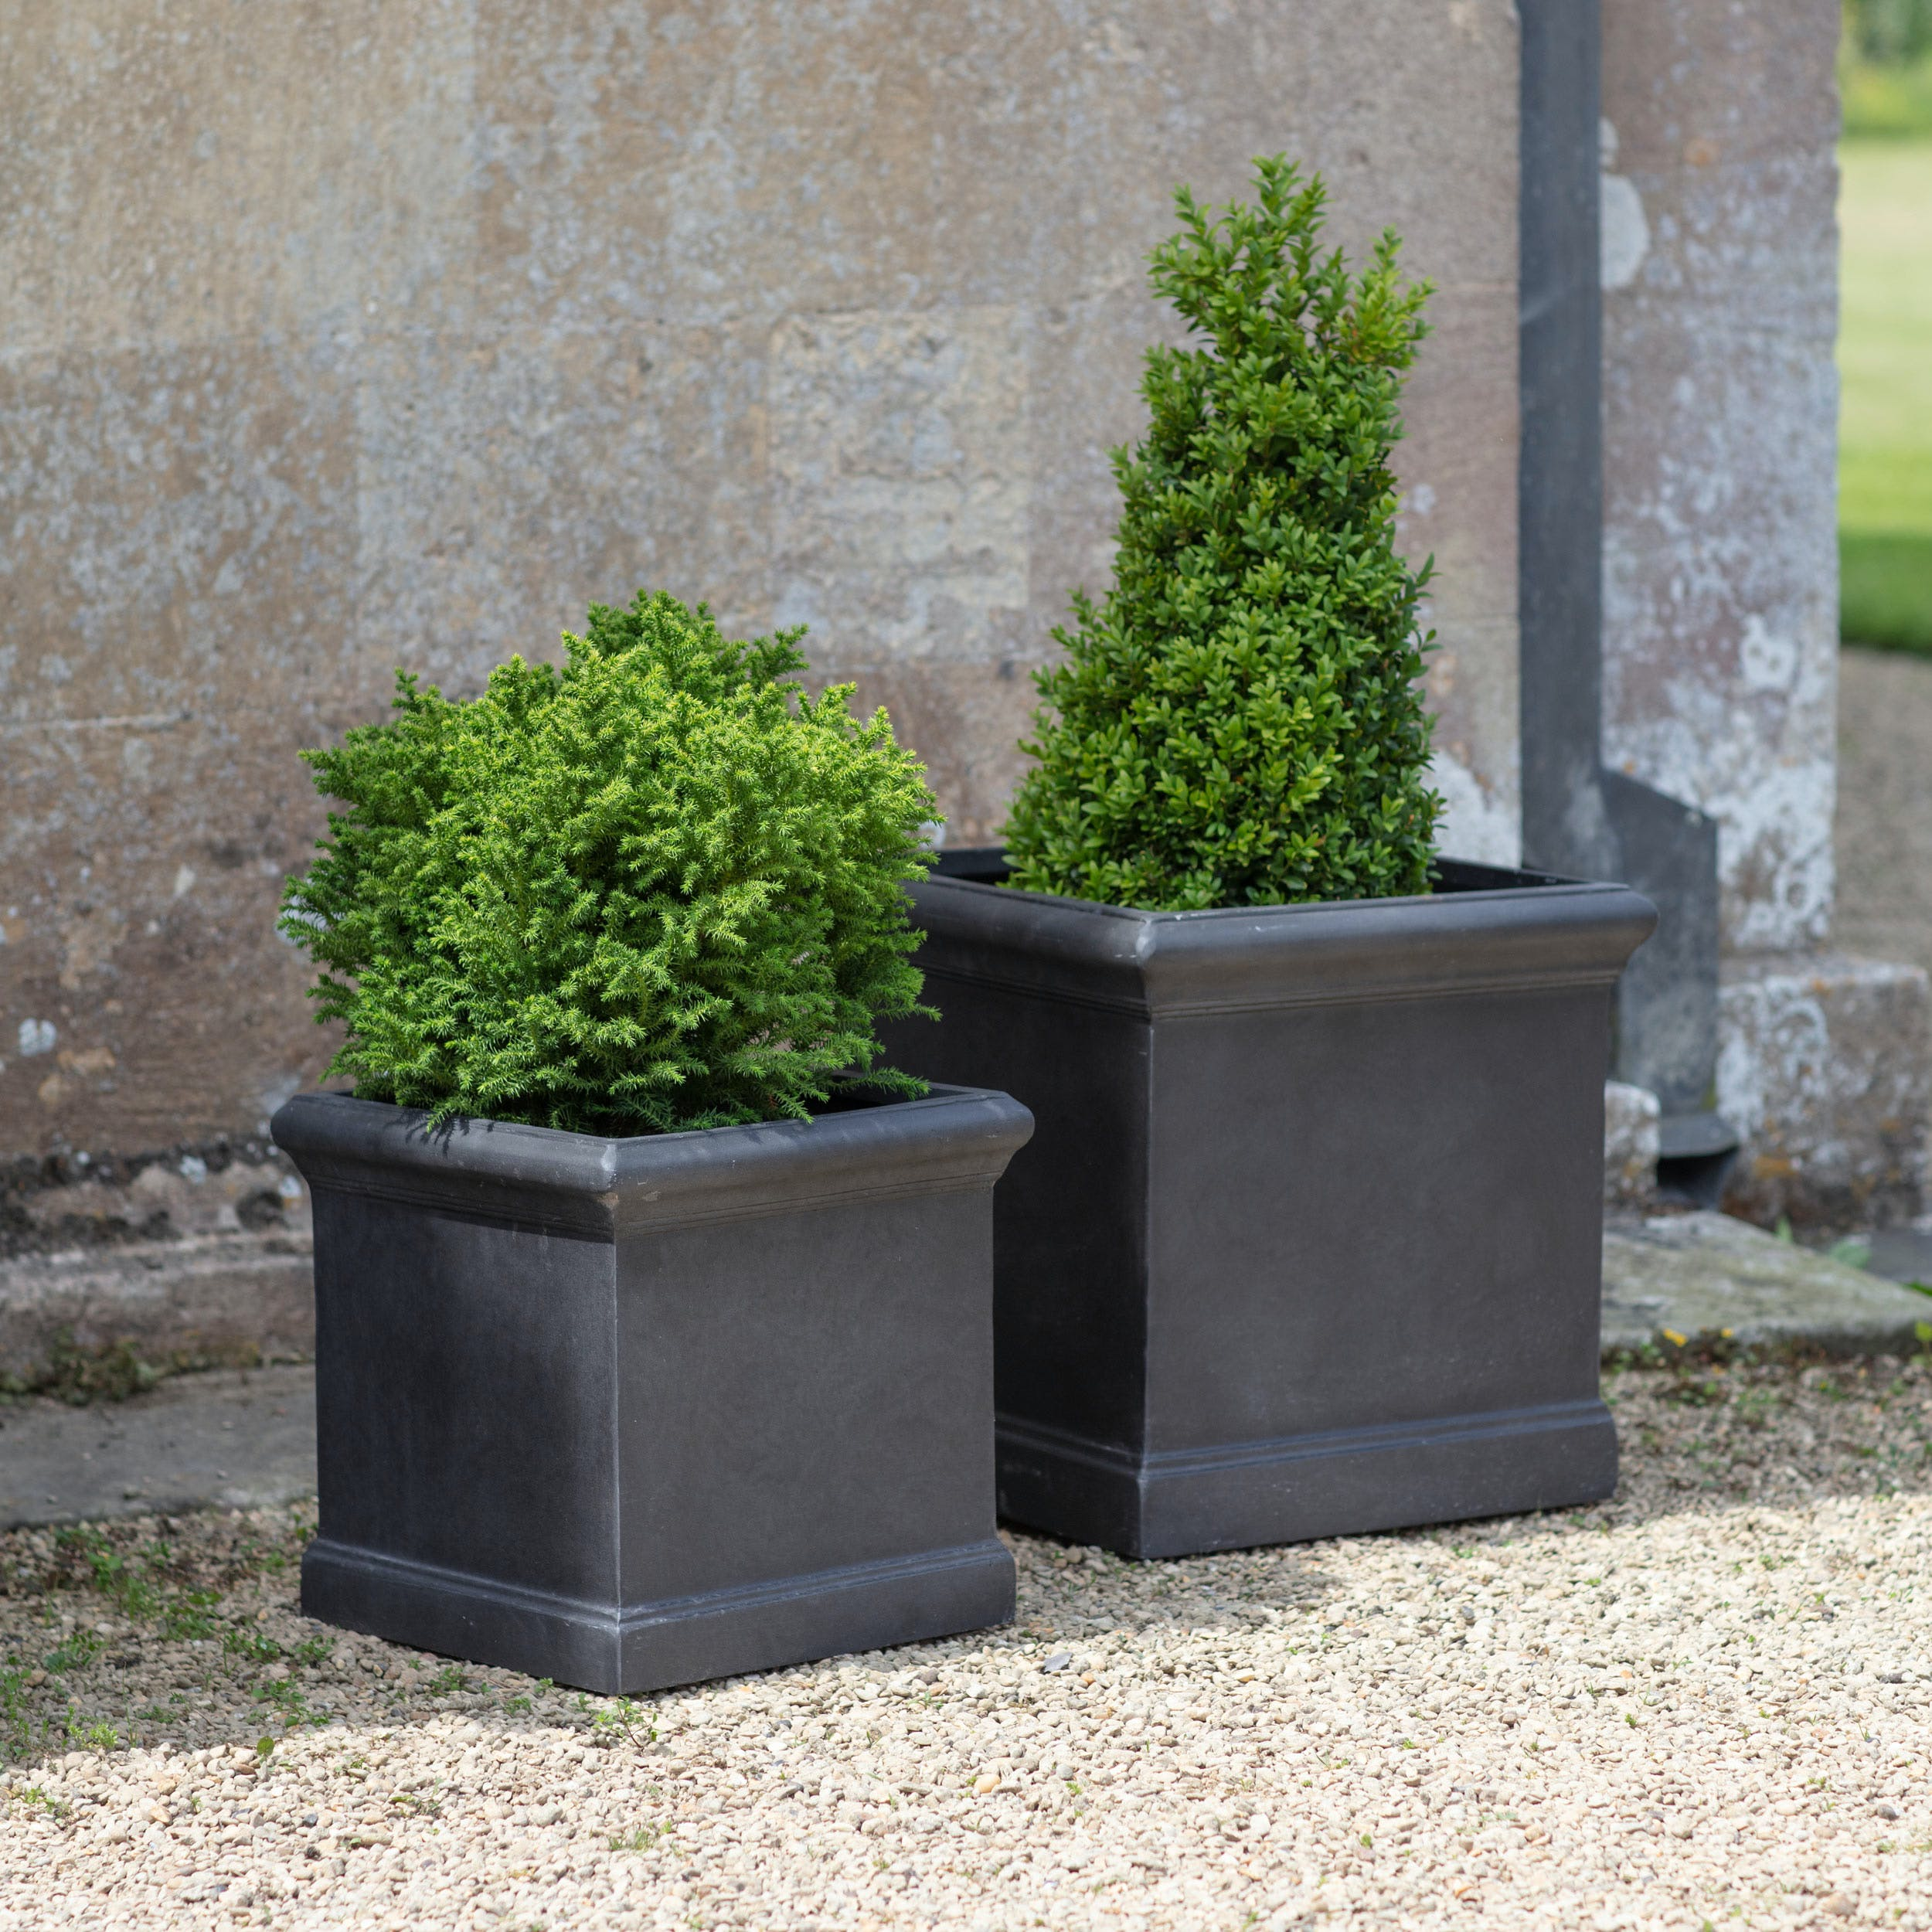 Fibre Clay Set of 2 Boxgrove Outdoor Planters in Black | Garden Trading